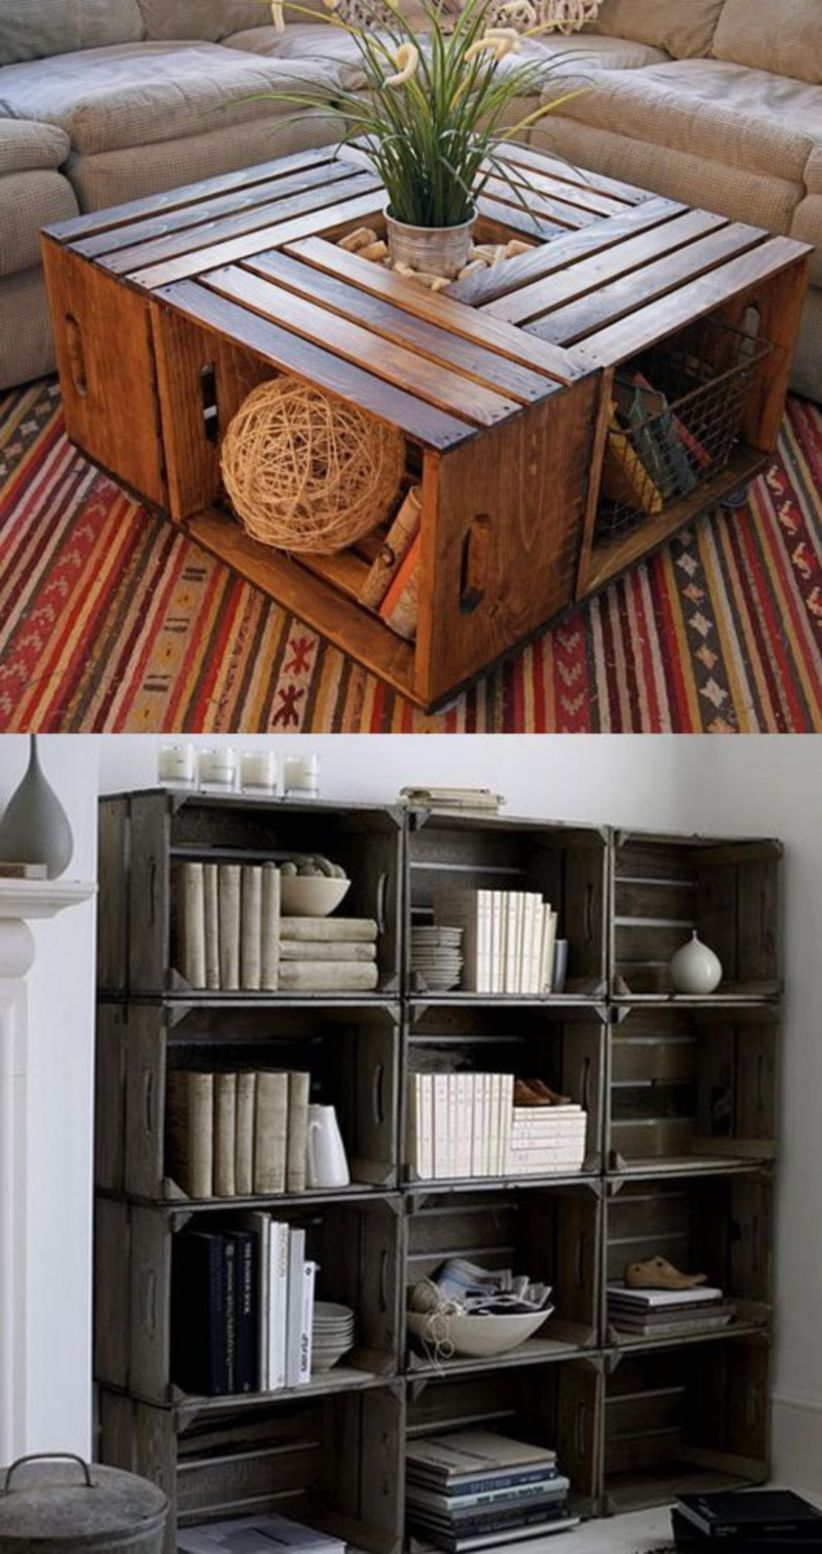 46 diy wooden furniture ideas that inspire decorating ideas rh pinterest at